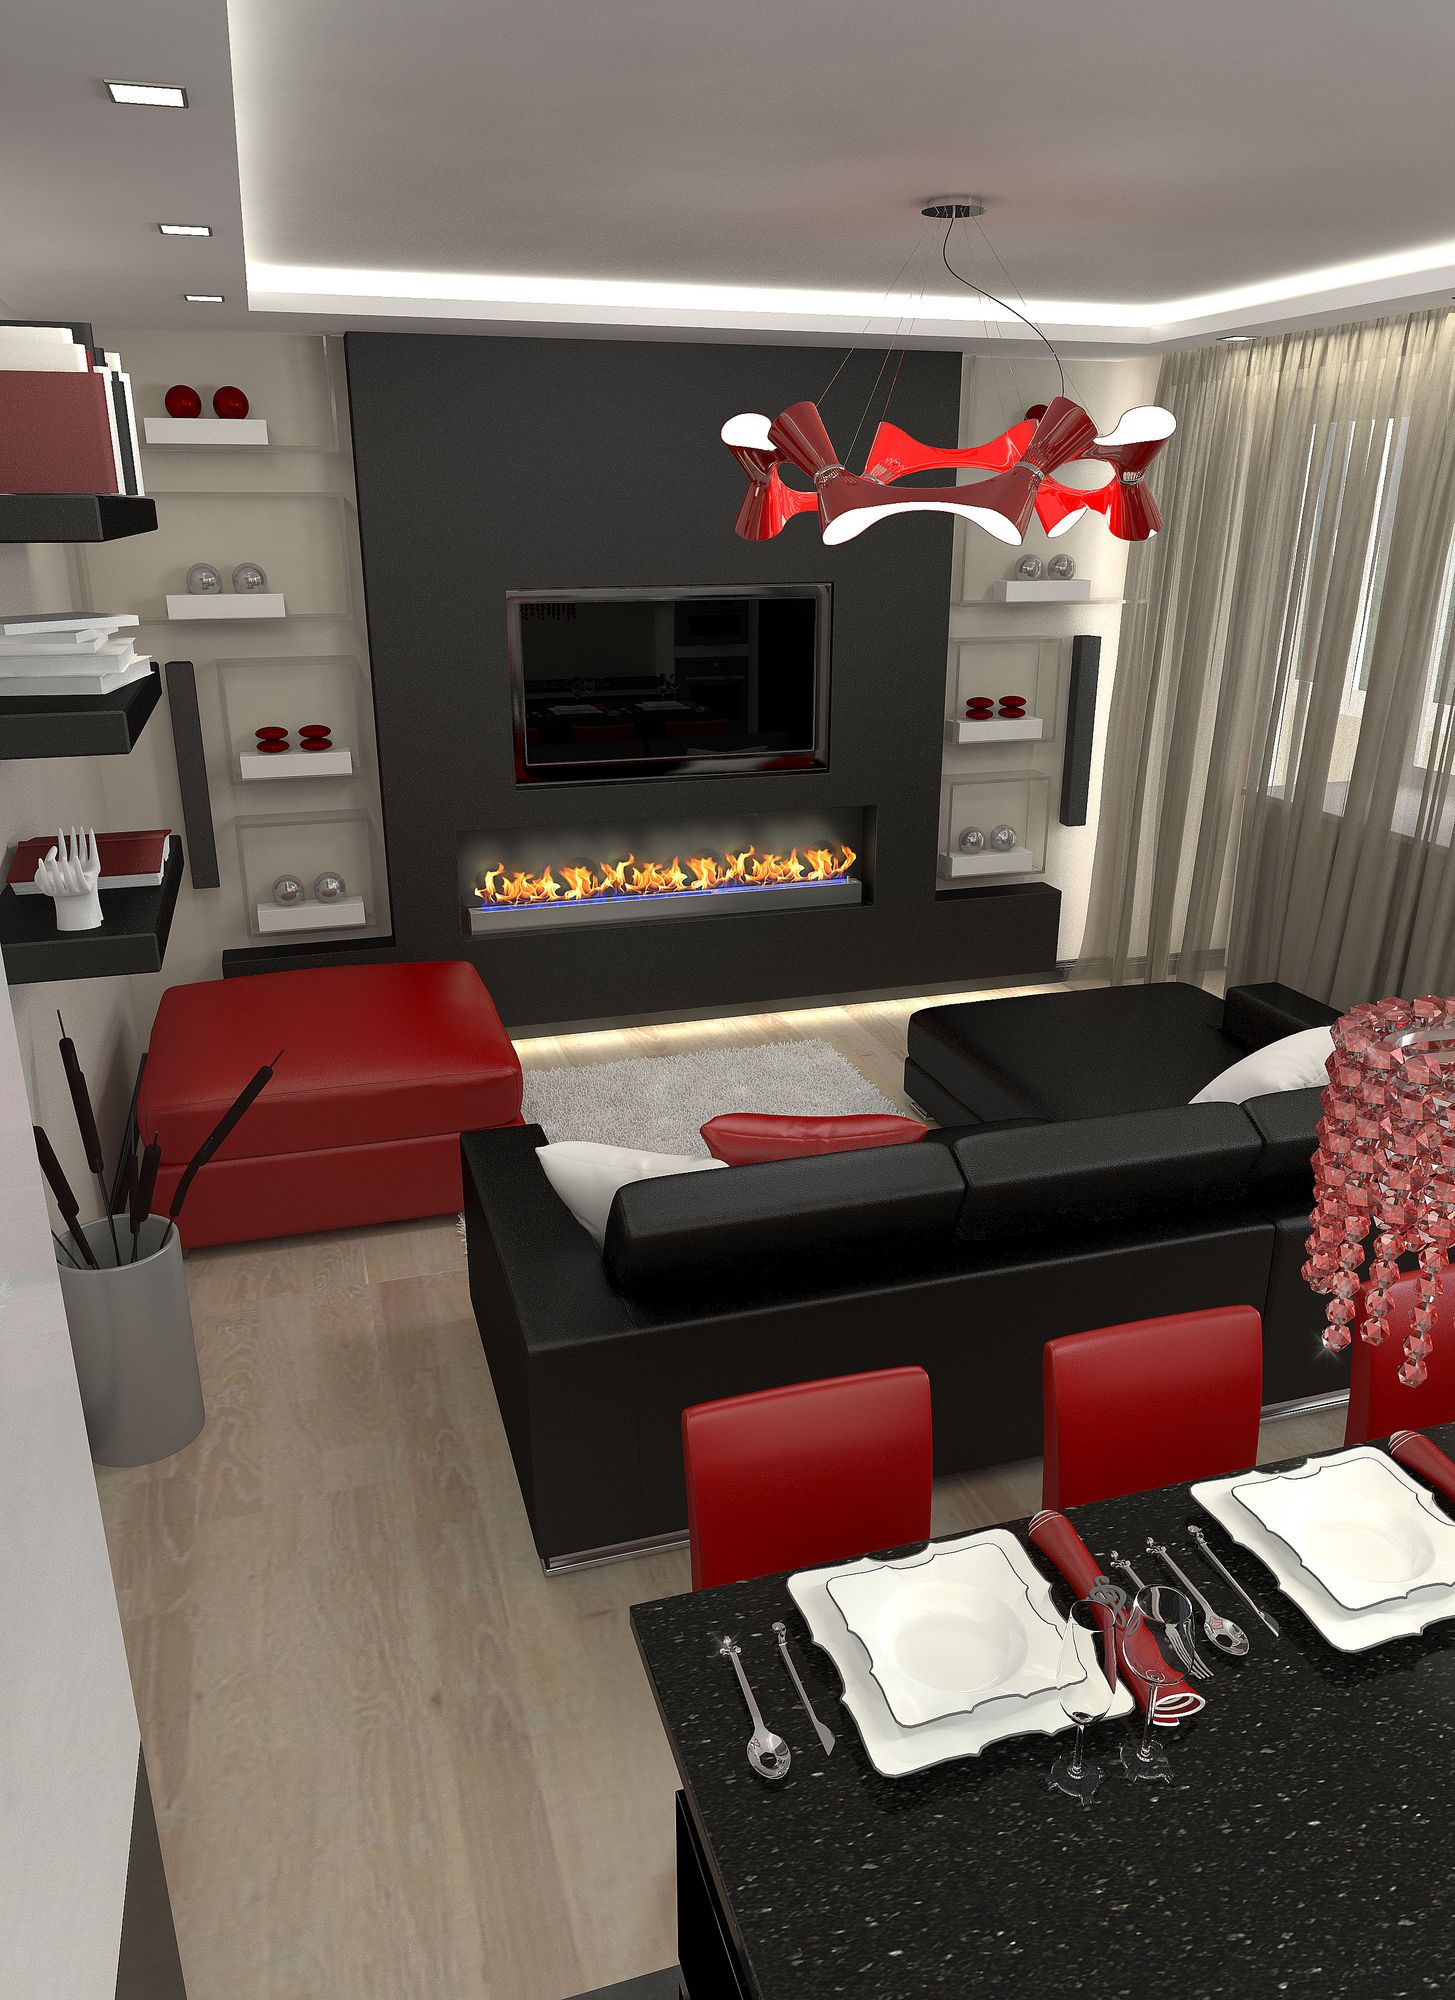 Red Black And White Living Room Amazing Ideas 9 On Home Architecture Design Ideas Jpg Red Living Room Decor Black And Red Living Room Black Living Room Decor